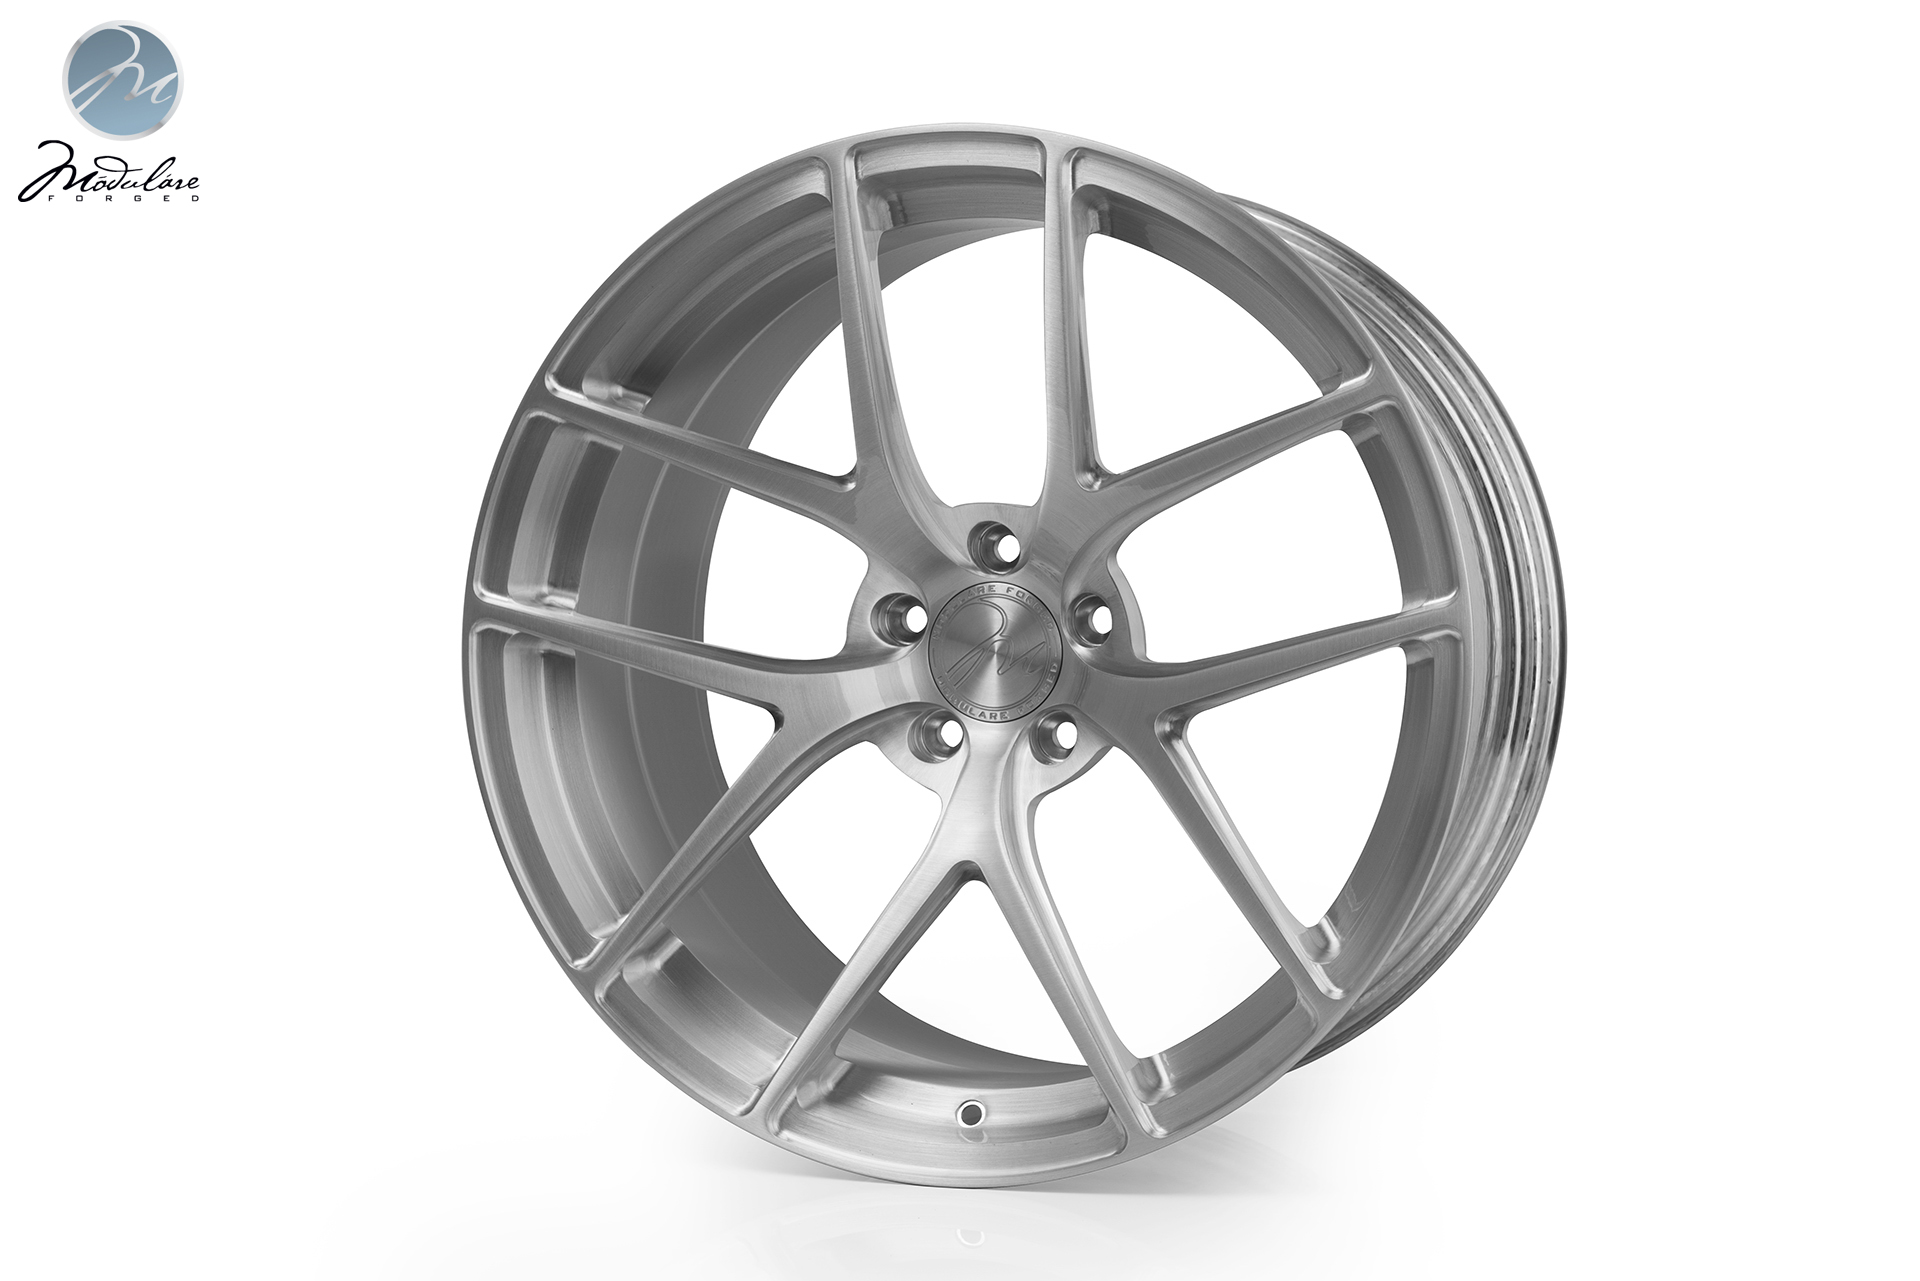 Tires Near Me Open Now >> Modulare Wheels | 2014 Collection | Presenting the Modulare B18 Evo